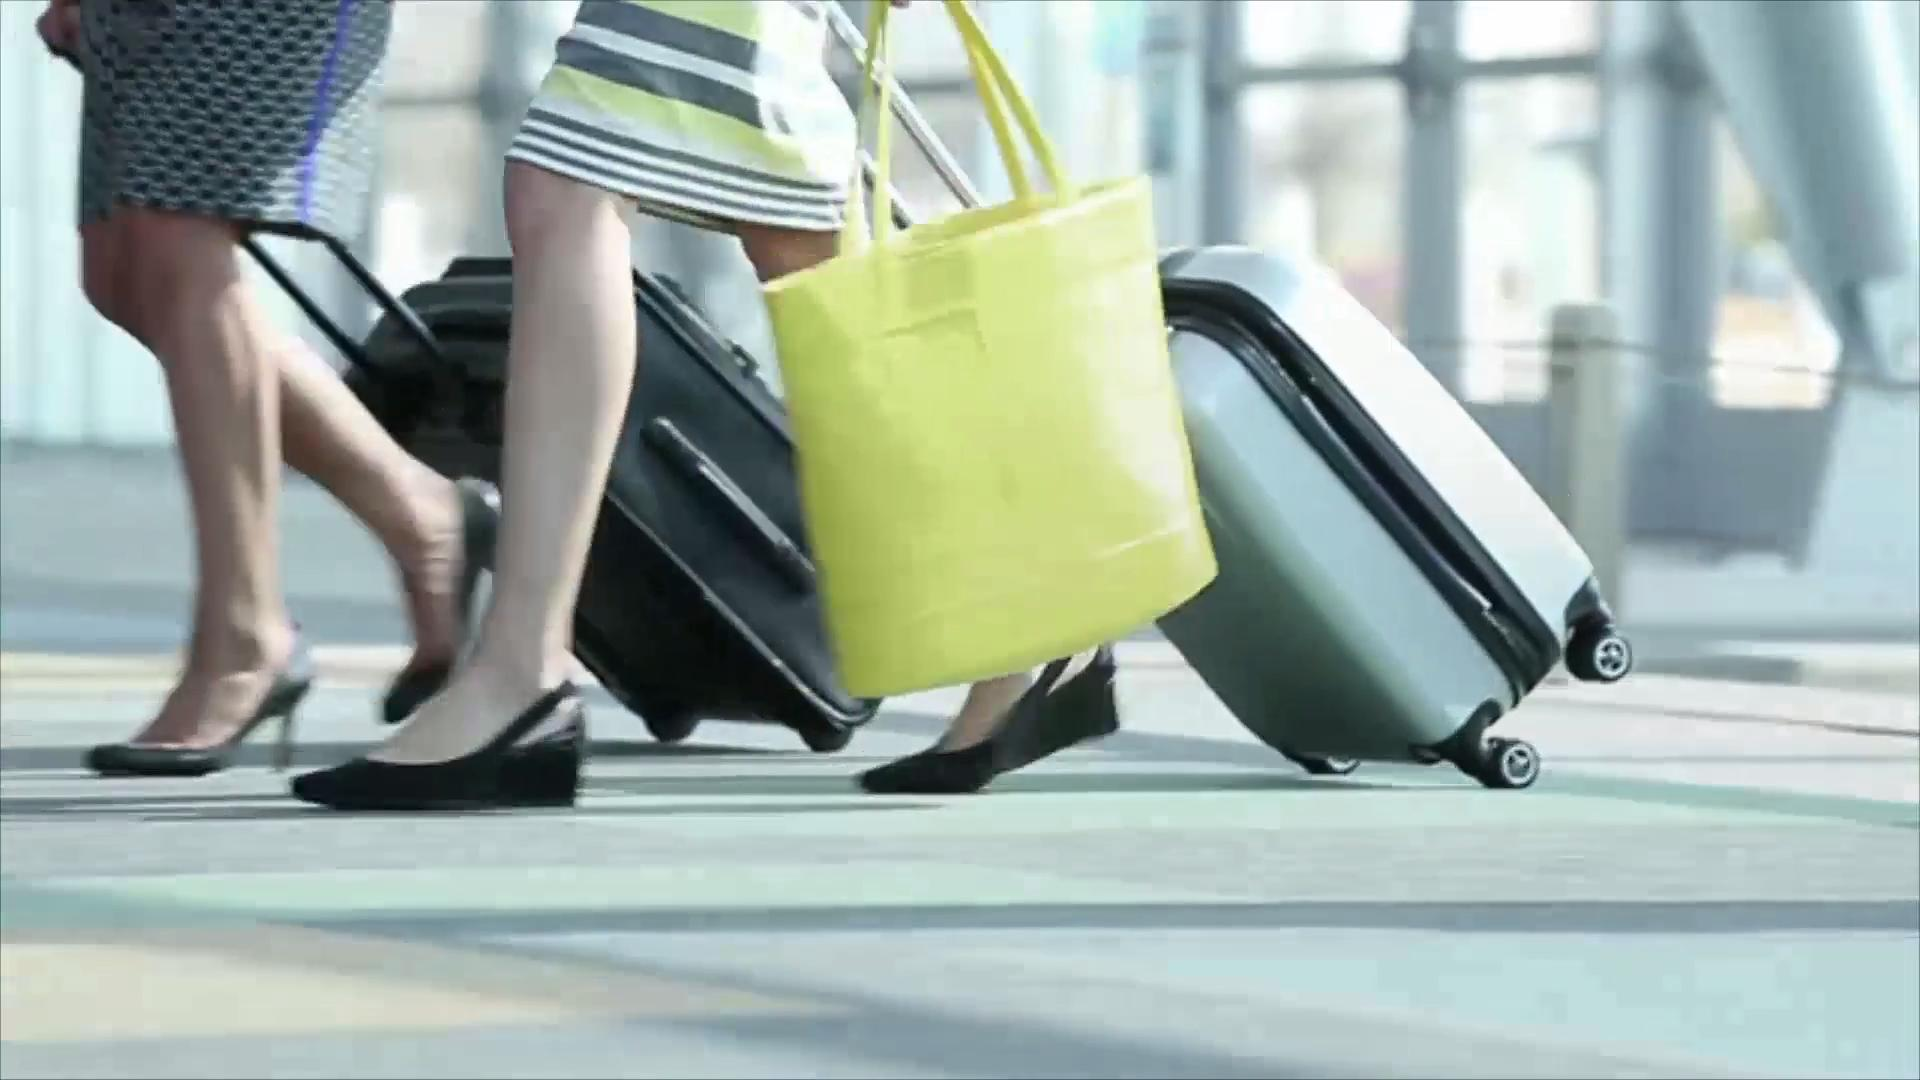 WATCH: Here's The One Thing You Should Never Board a Plane Without